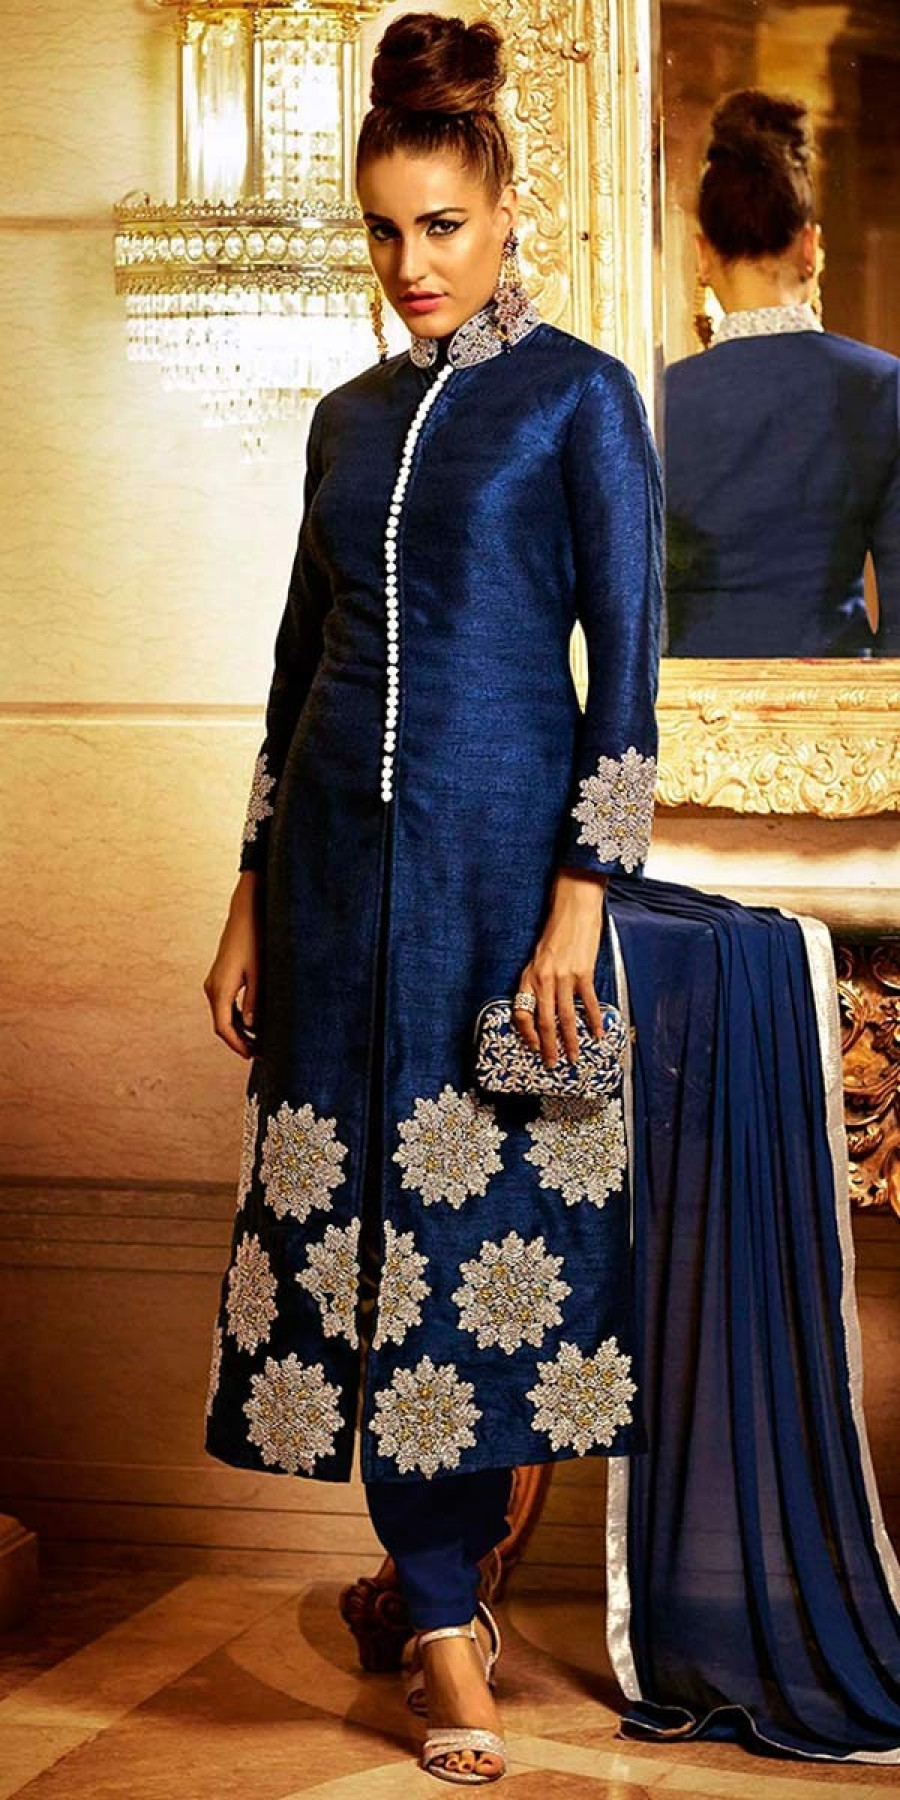 Buy Vibrant Navy Blue Bhagalpuri Silk Salwar Suit With Dupatta Online